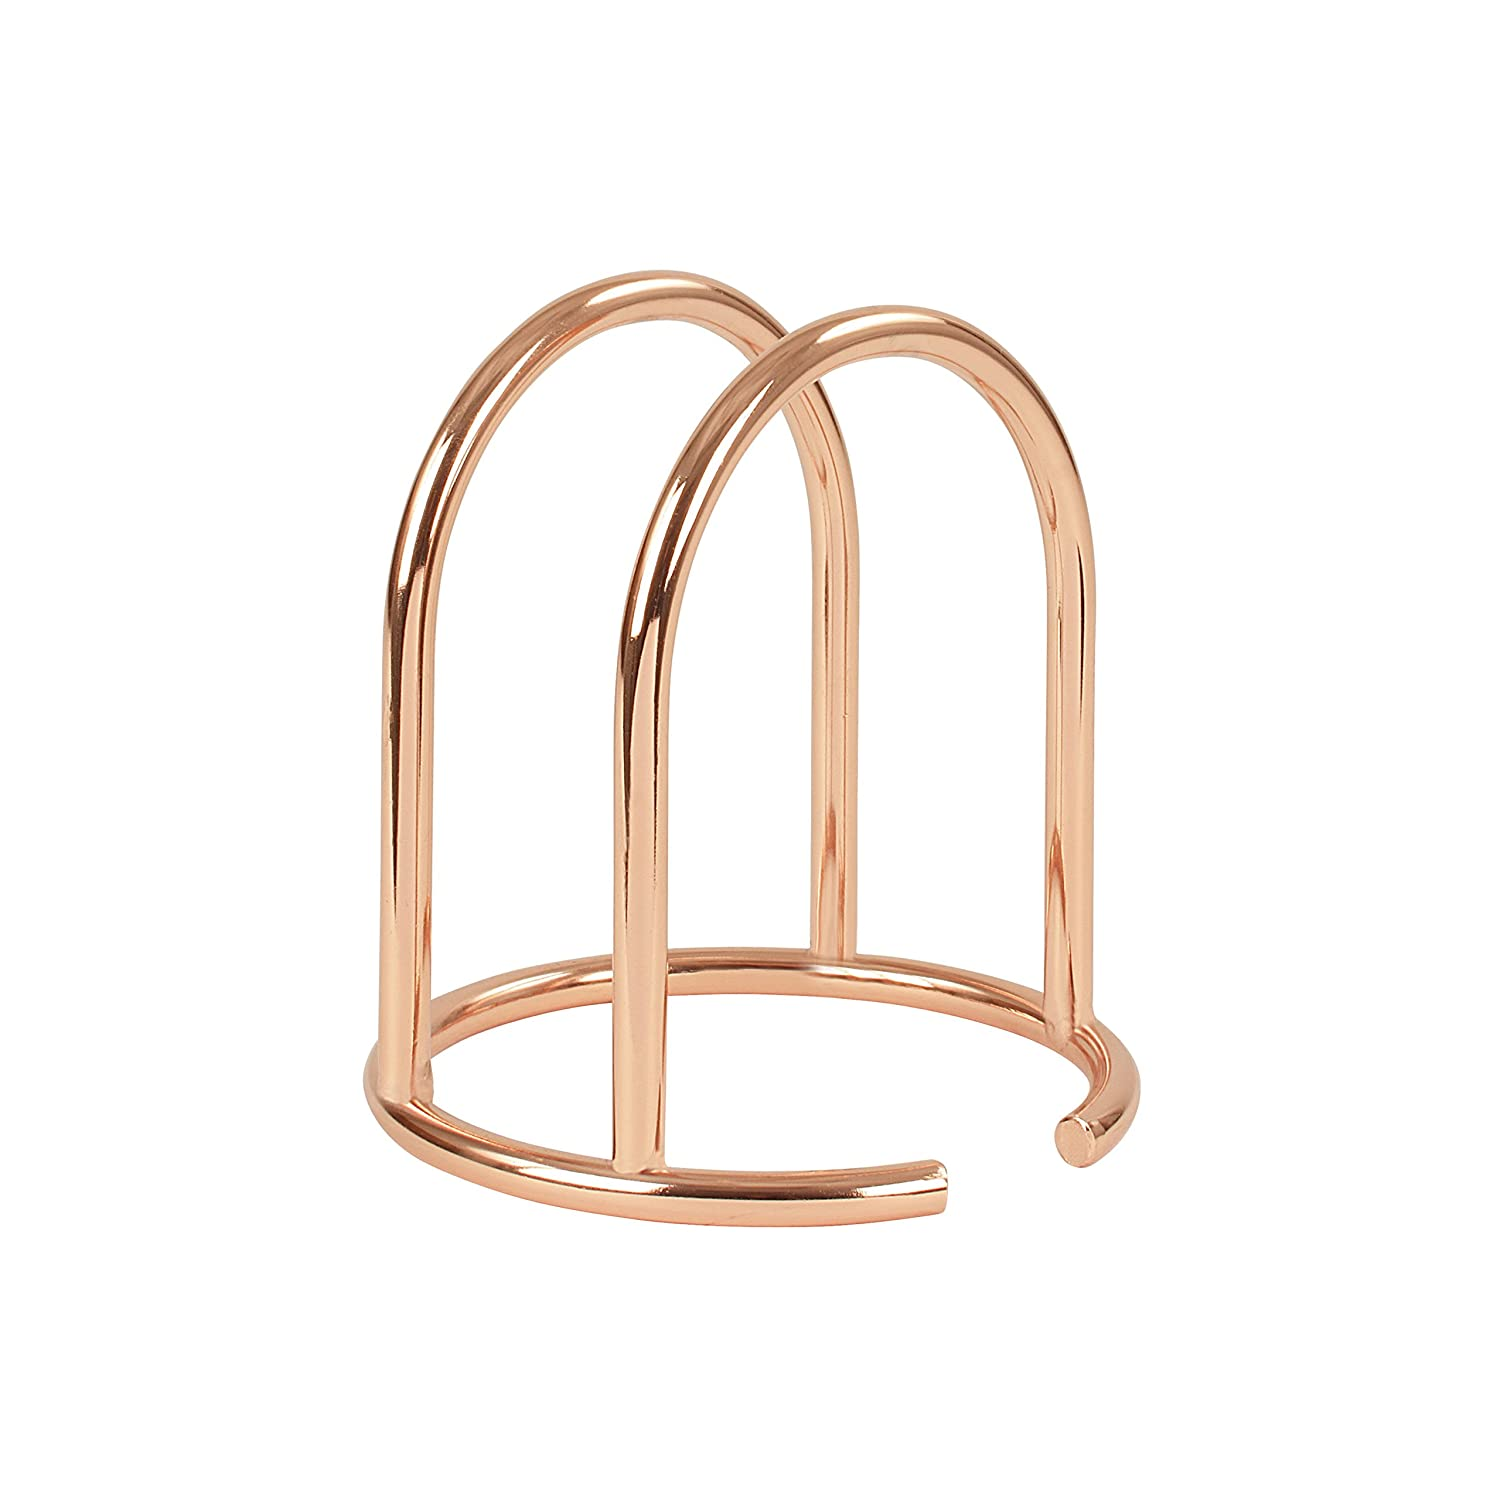 Spectrum Diversified Euro Napkin Holder, Copper 42379